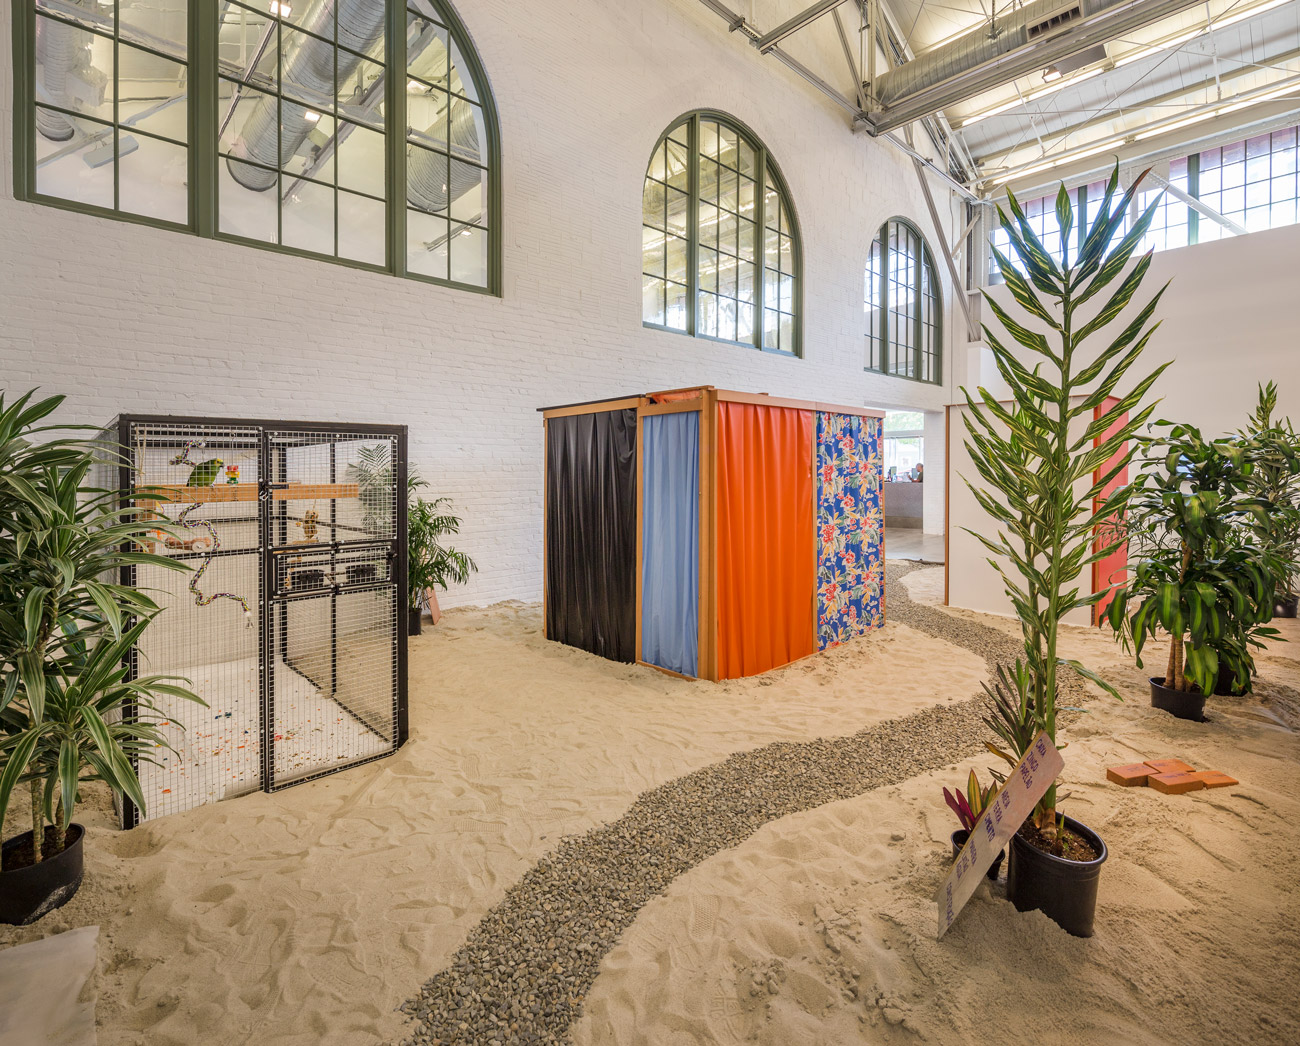 In a large room, sand covers the floor and a gravel path winds through objects including potted trees, a bird cage, a small structure draped in fabric and a handwritten sign.